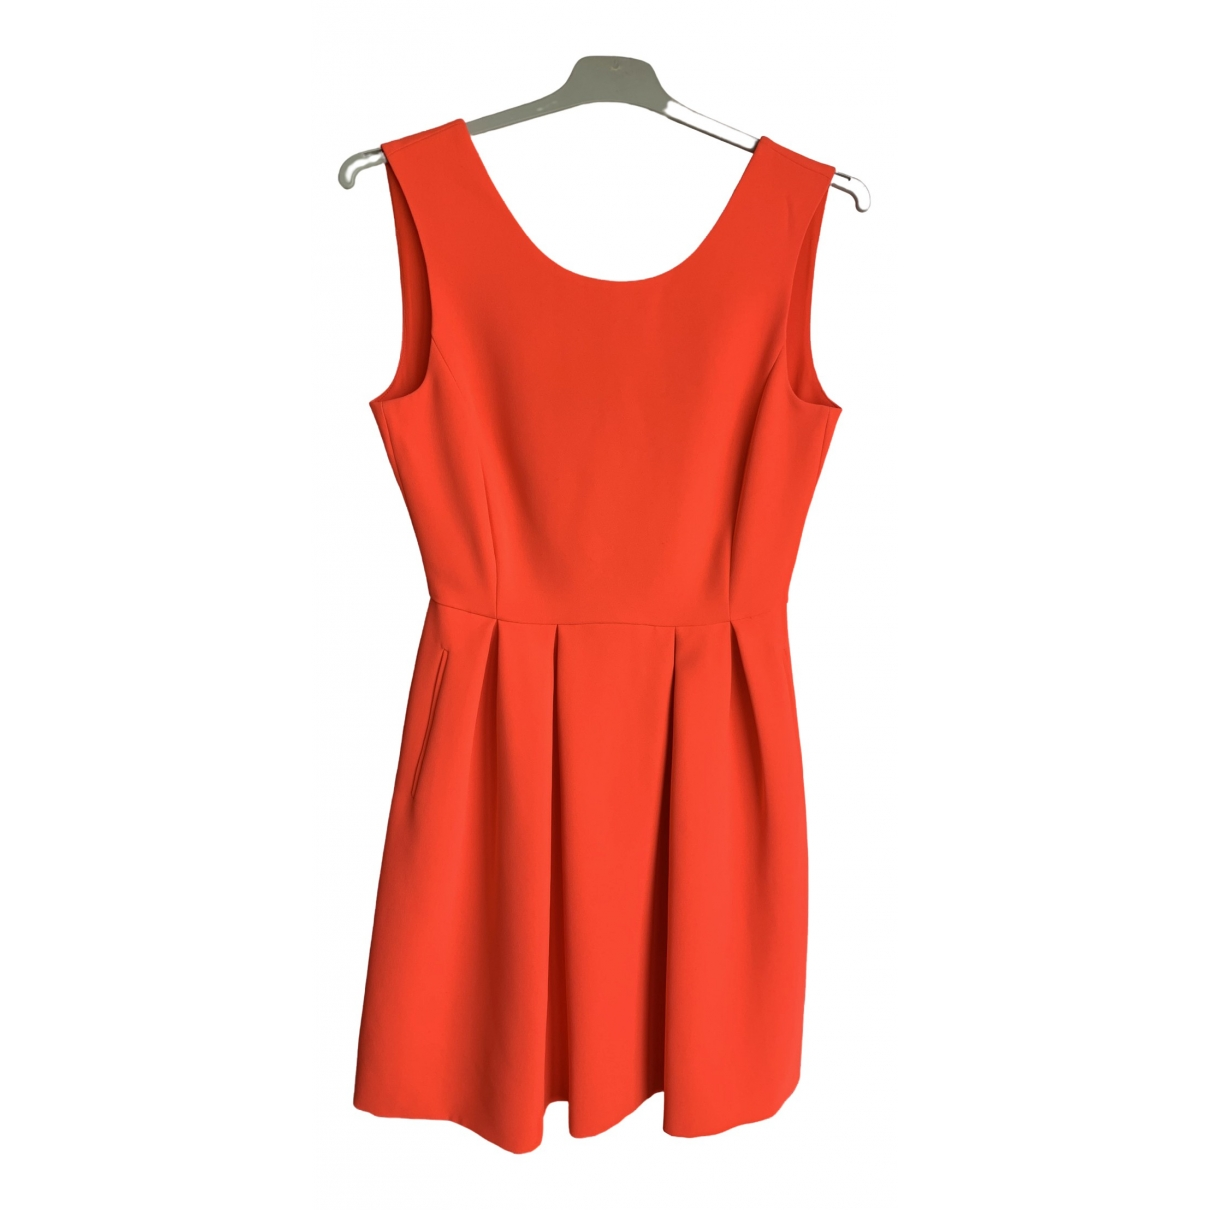 Claudie Pierlot \N Kleid in  Orange Synthetik